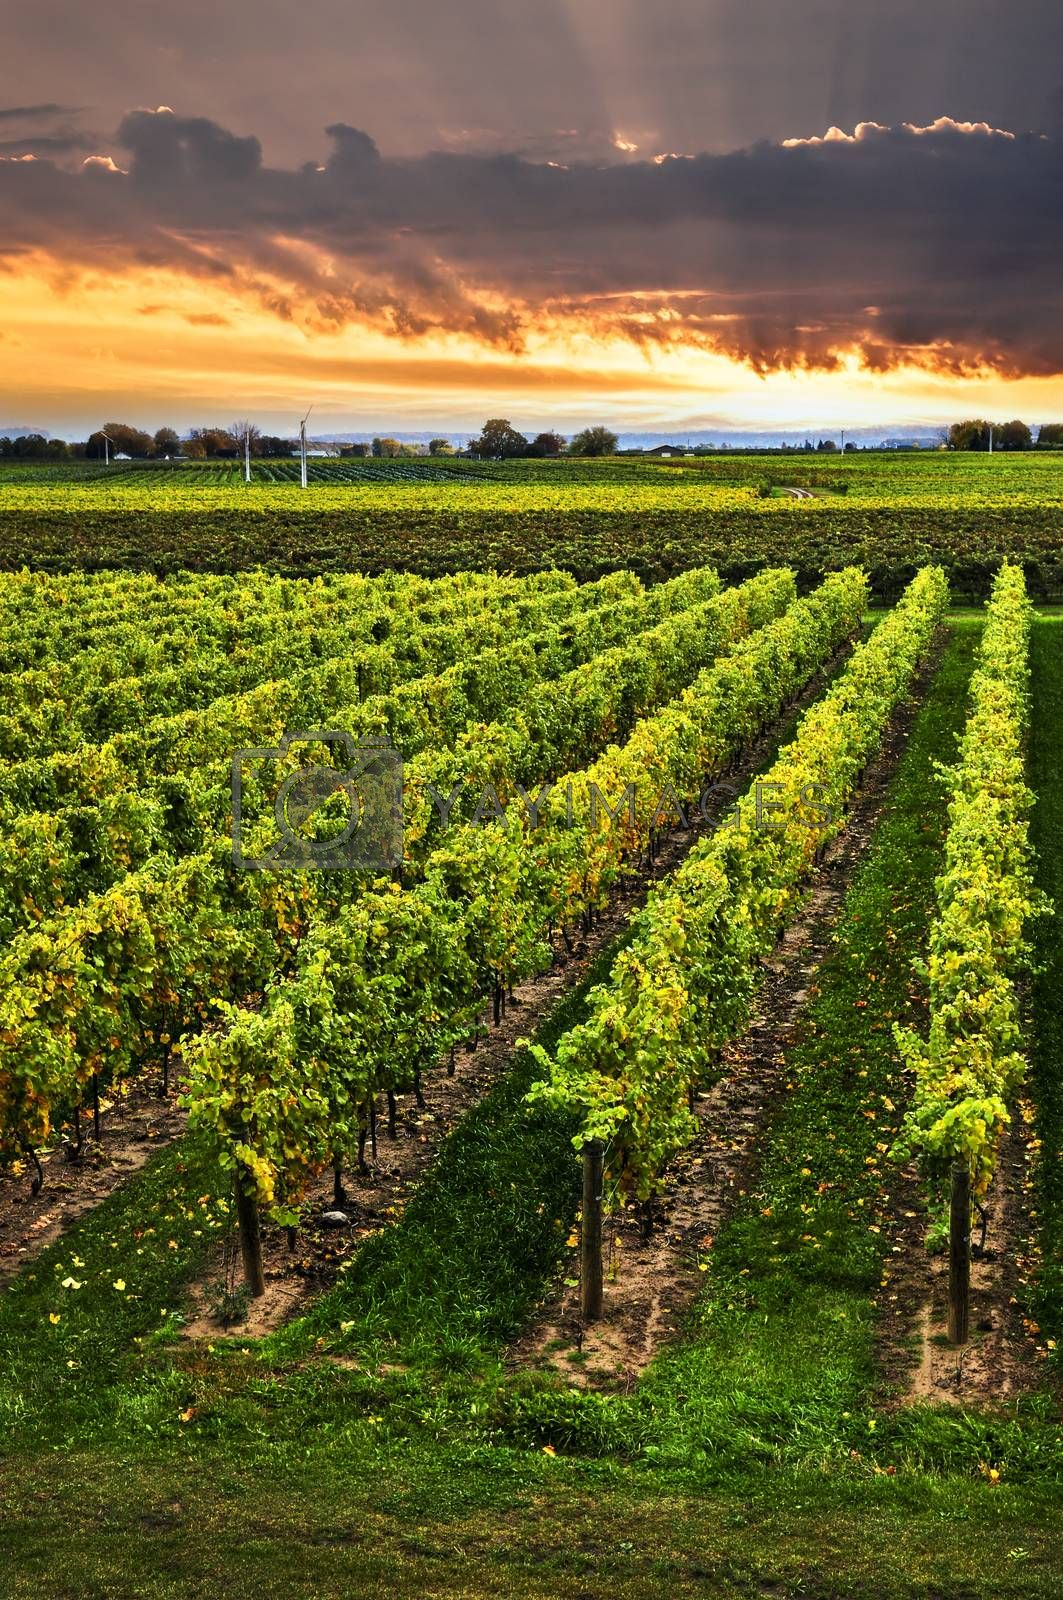 Vineyard at sunset in Niagara peninsula, Ontario, Canada.